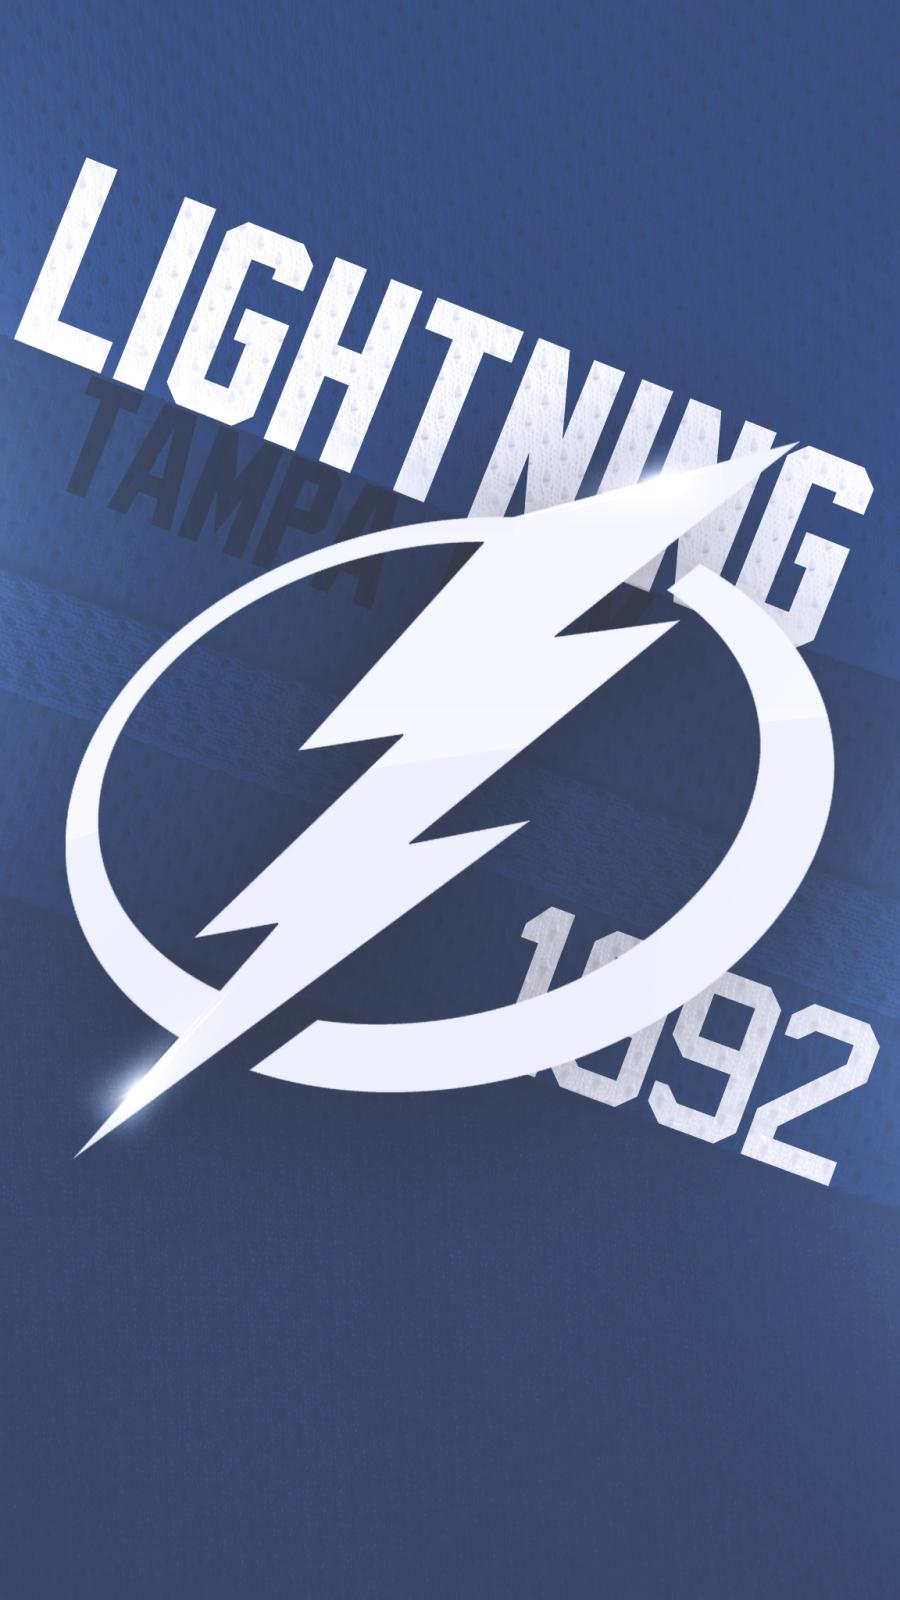 10 Best Tampa Bay Lightning Iphone Wallpapers FULL HD 1920×1080 For